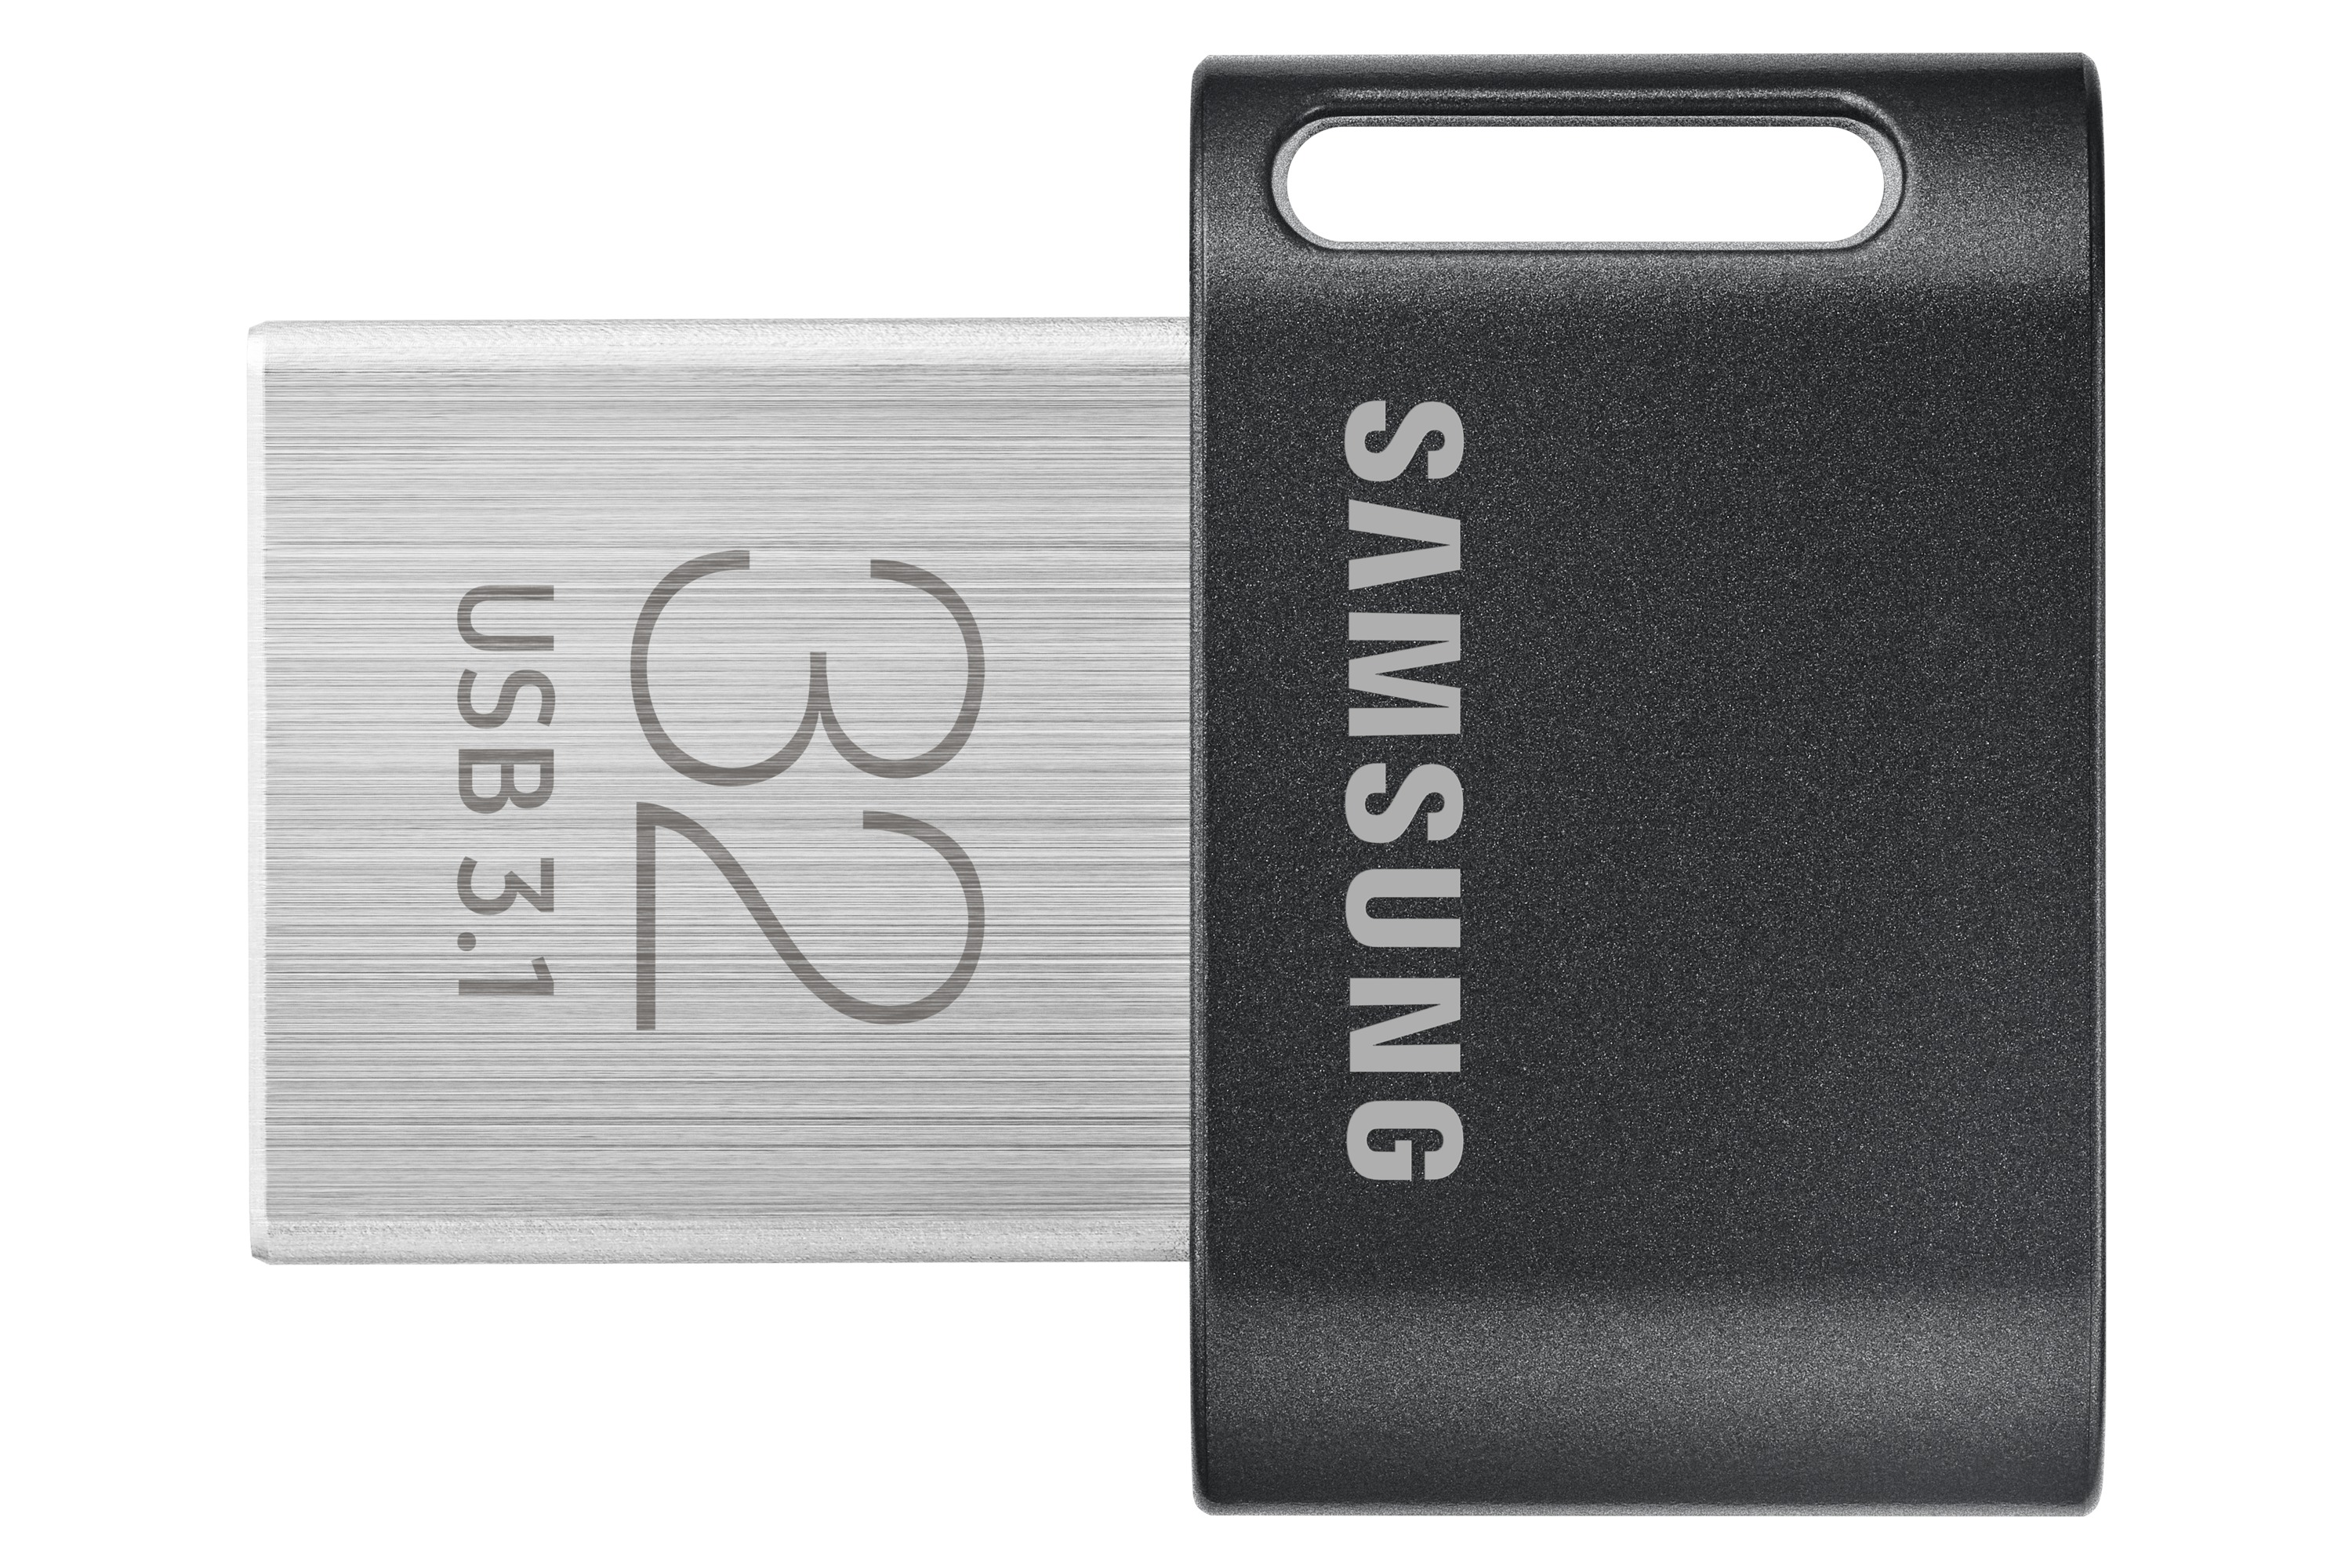 Korting Samsung Fit Plus 32GB usb sticks